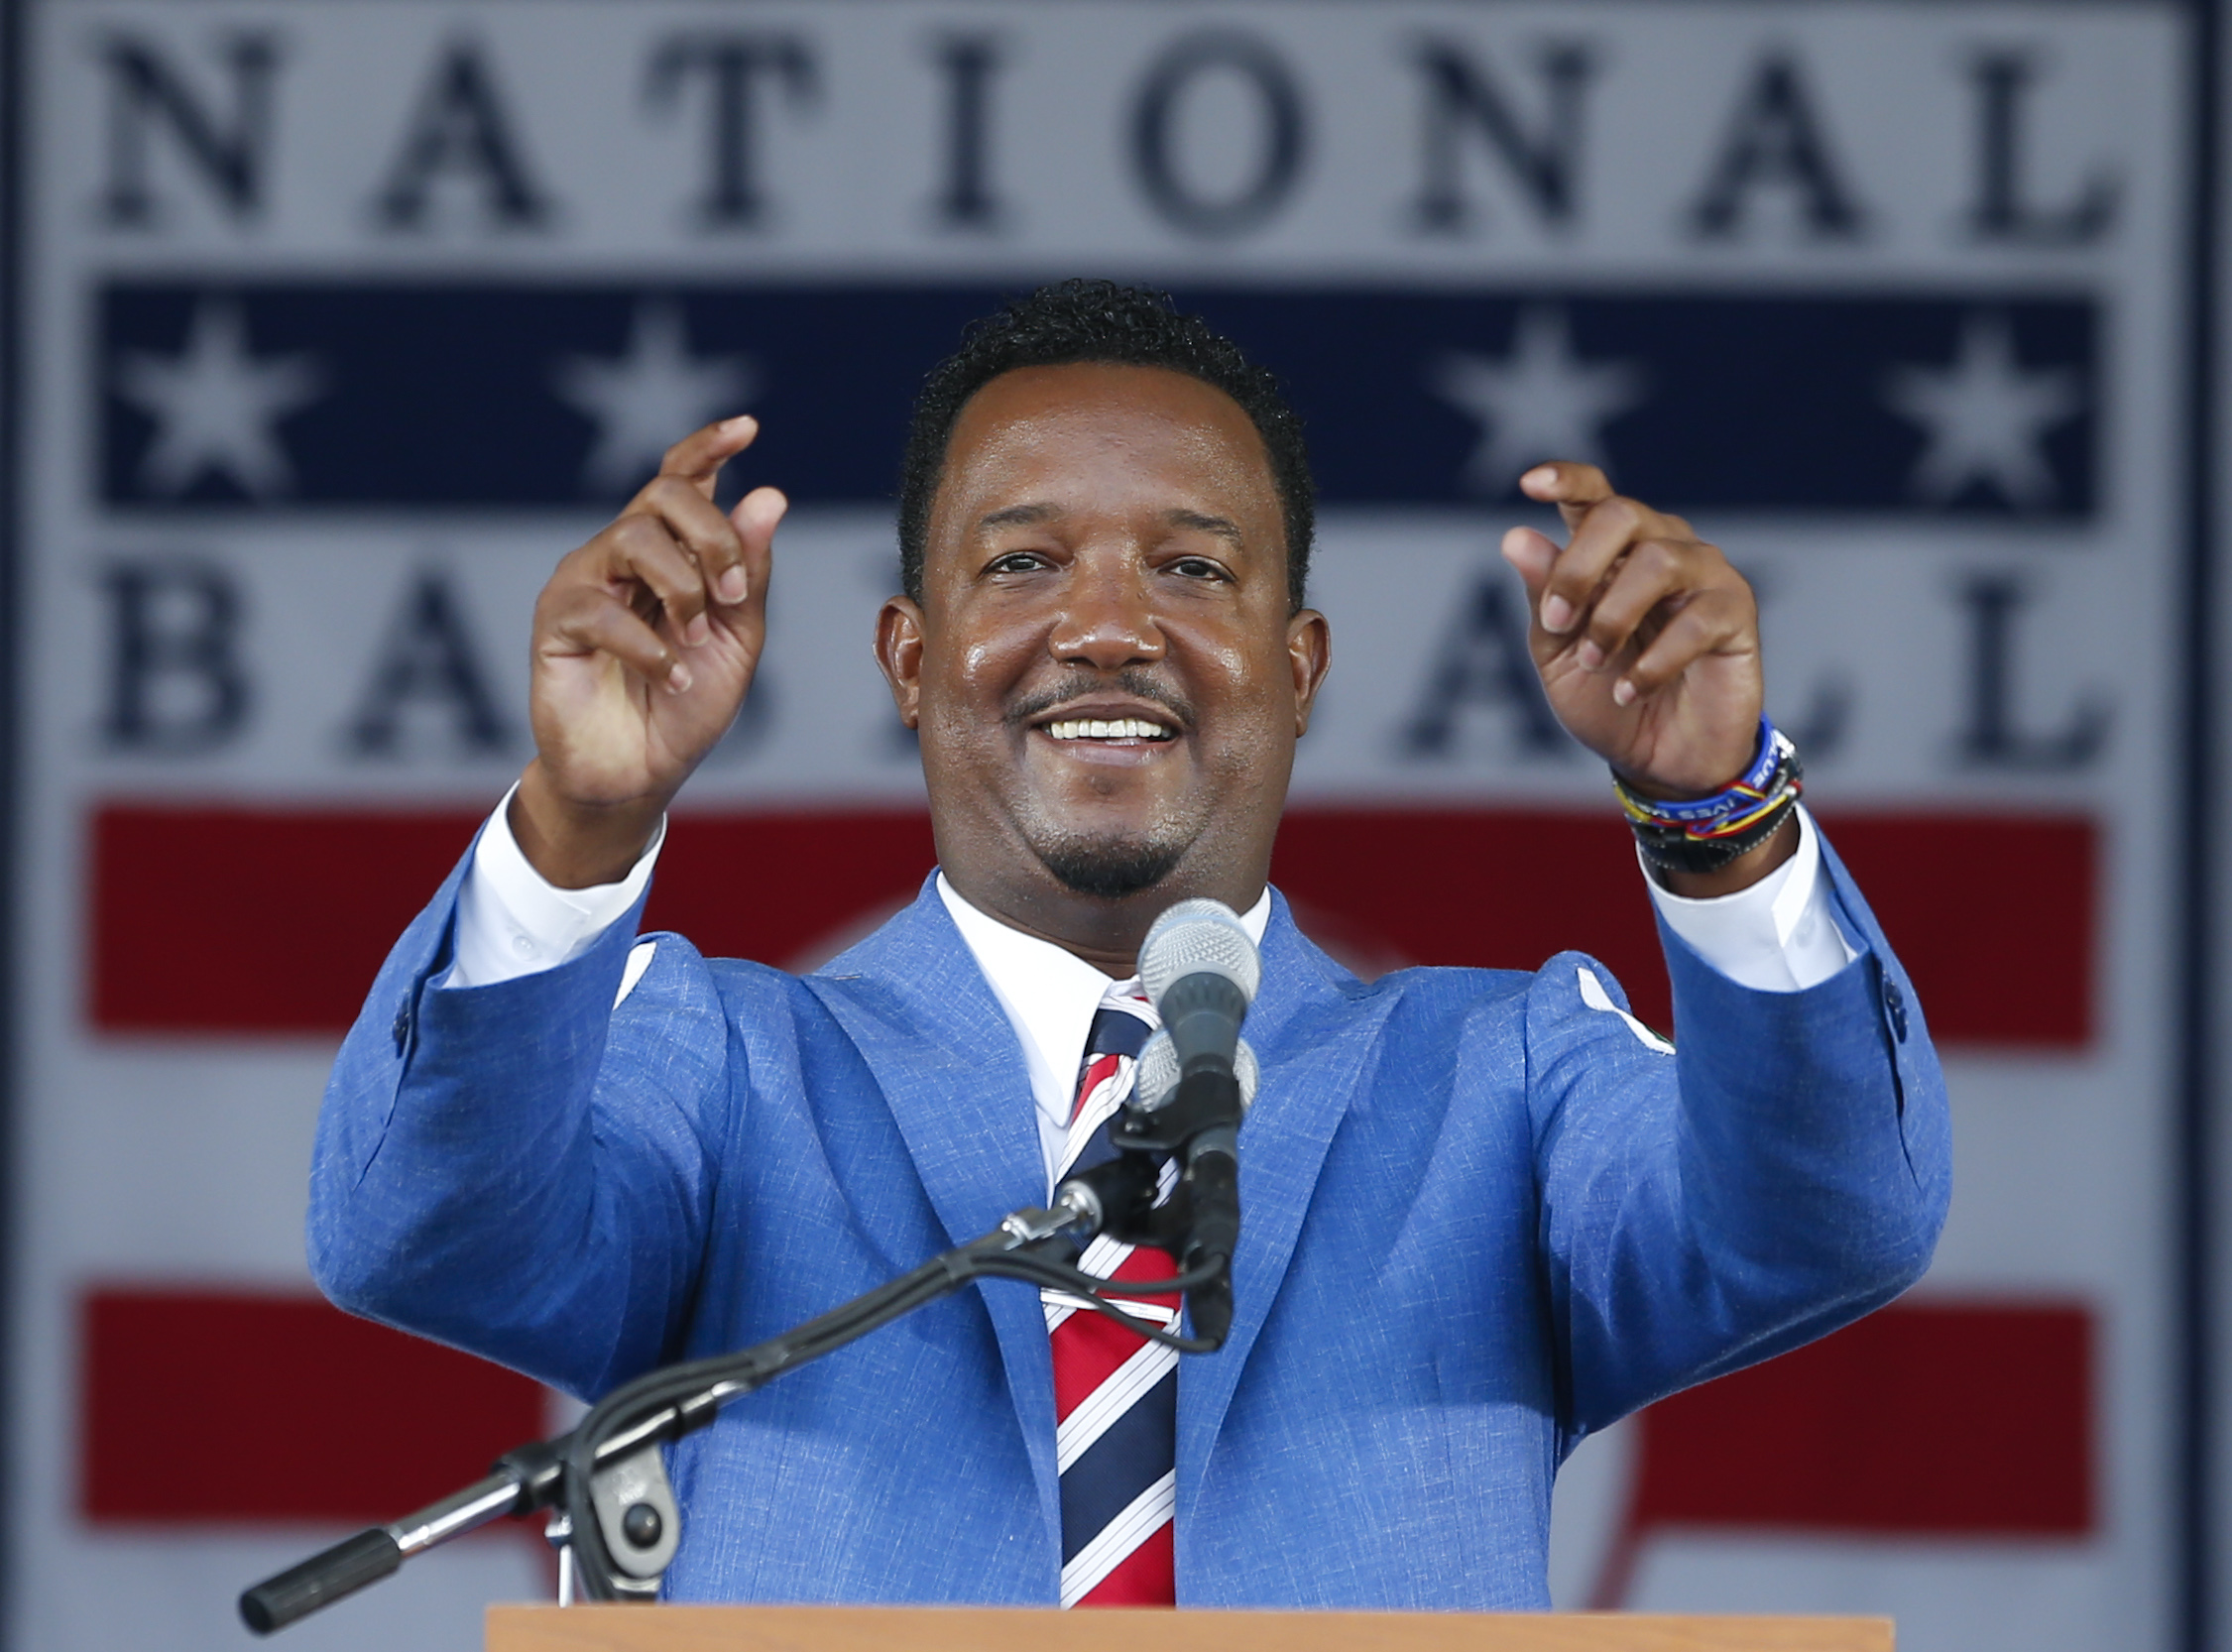 Pedro Martinez steals the show on Hall of Fame induction day